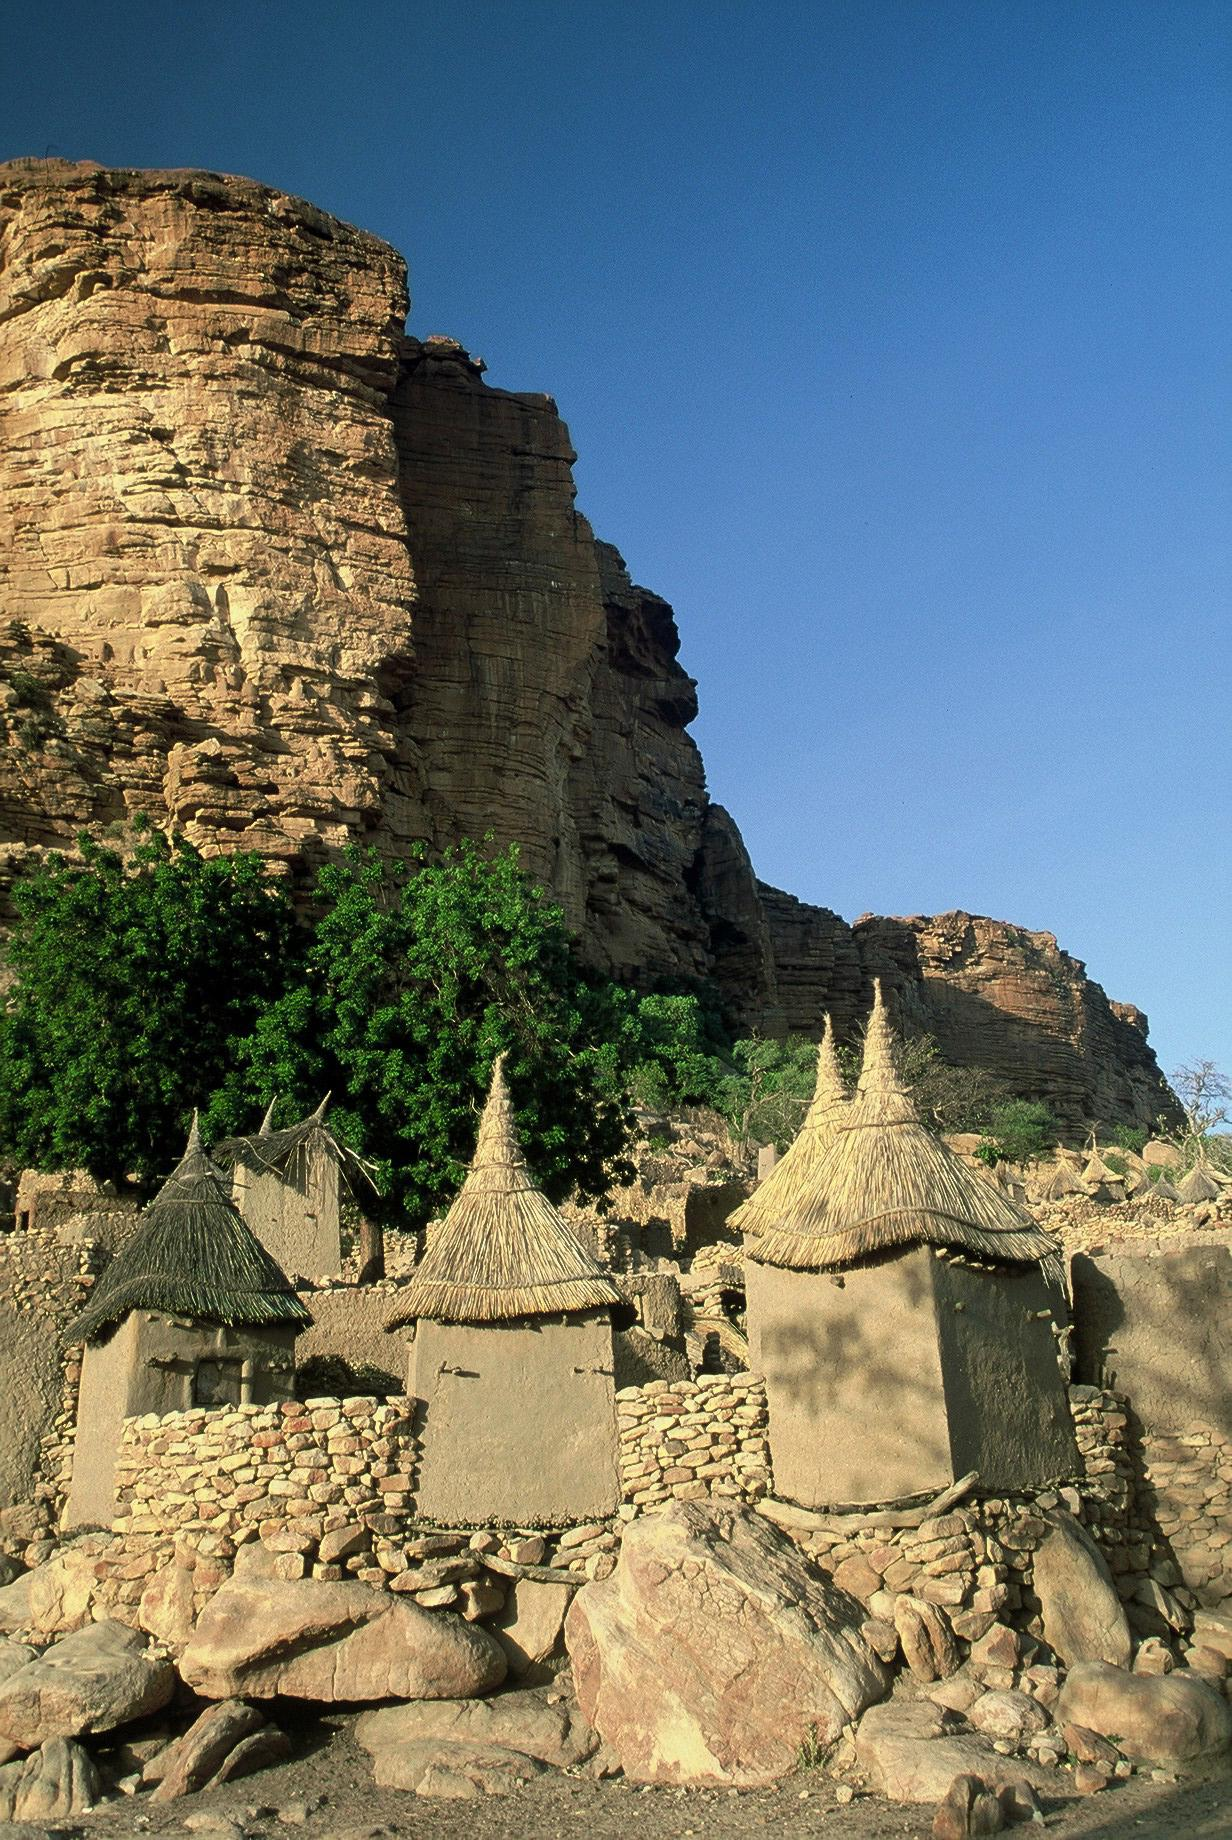 Dogon village in Mali ©Michiel Kupers